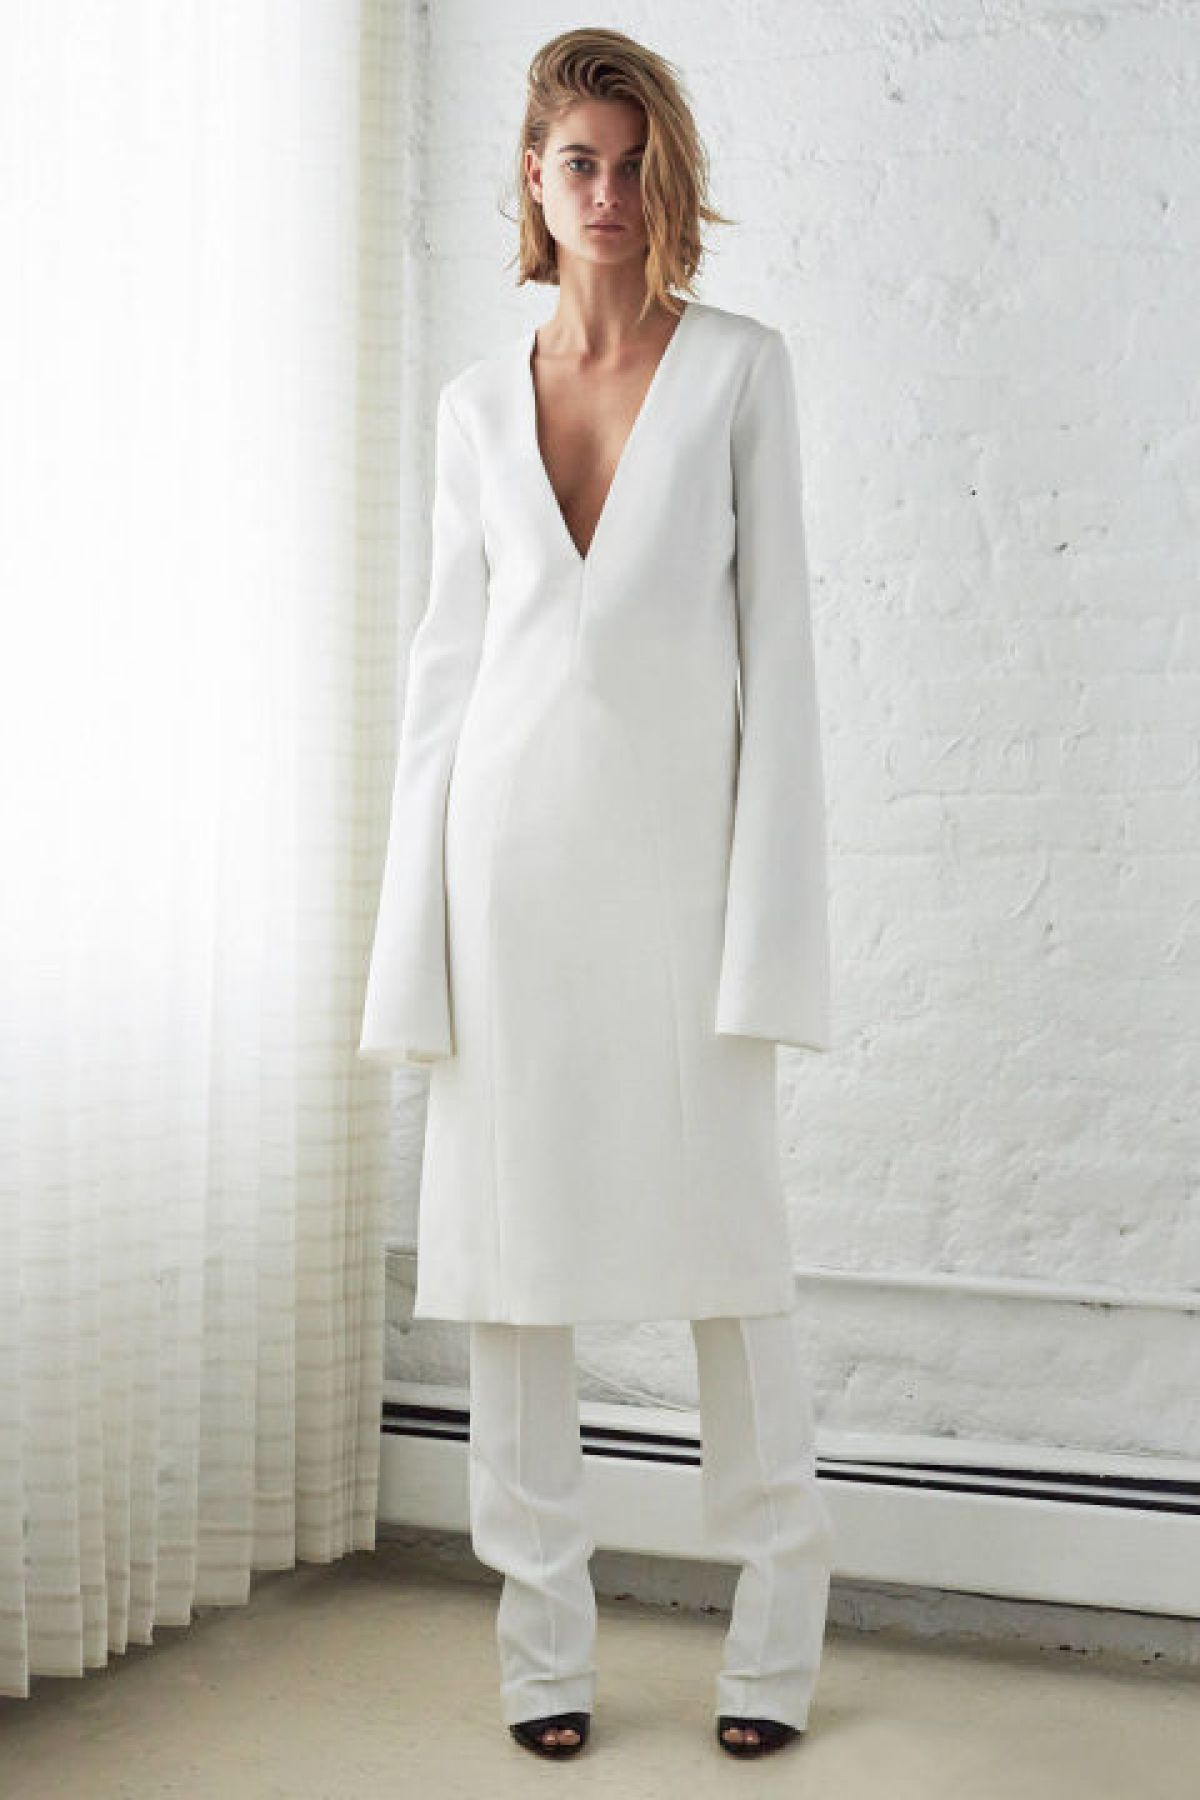 For those indecisive moments, the dresses-over-pants trend is the best of both worlds—and the new standard in louche layering.<br /><br /><br /> (Pictured: Ellery)<br /><br /><br />